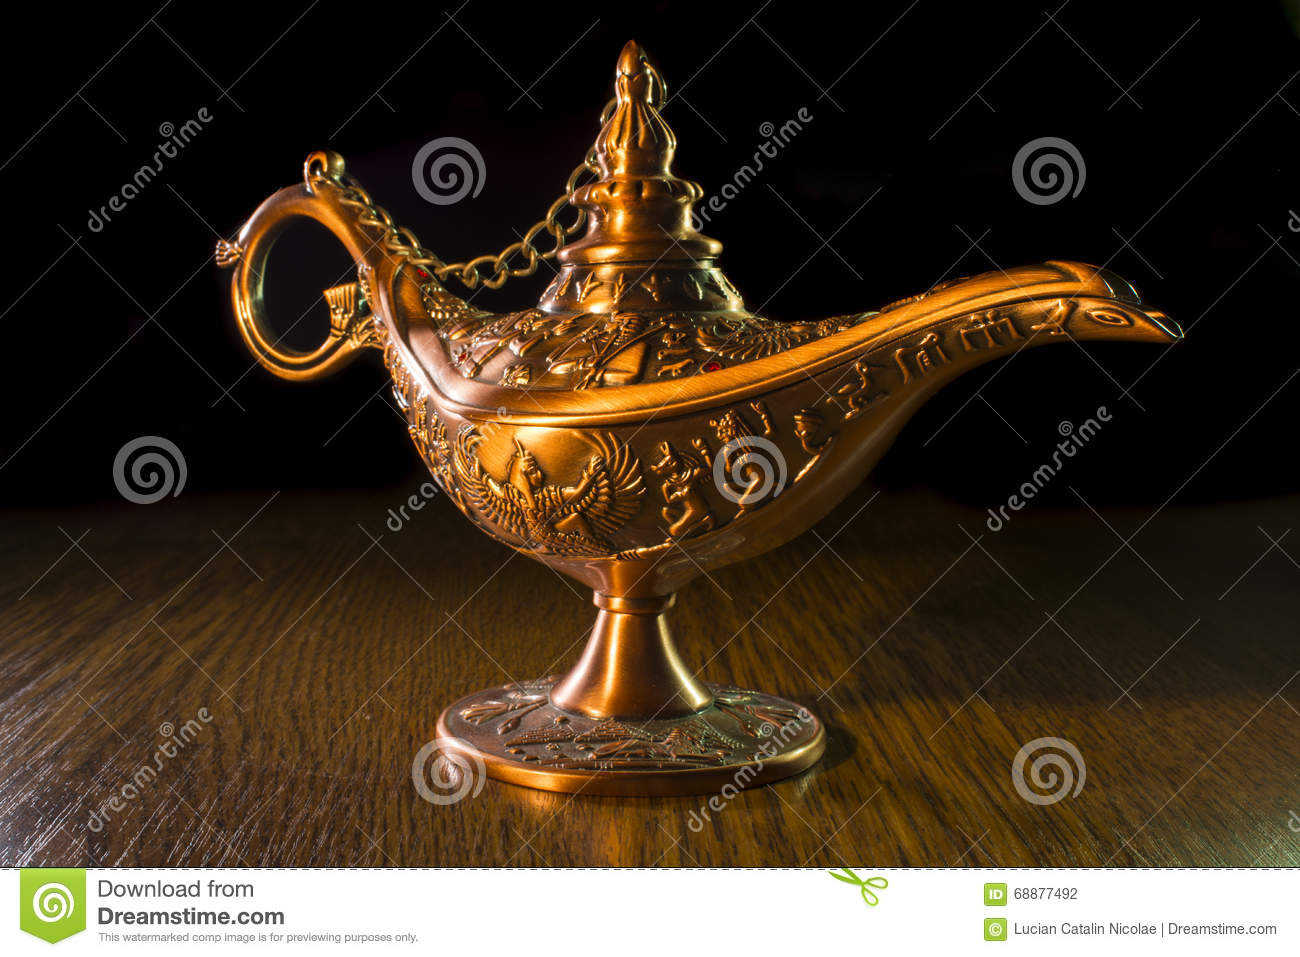 Lampe D Aladin Photo Stock Image Du Concepts Abracadabra 68877492